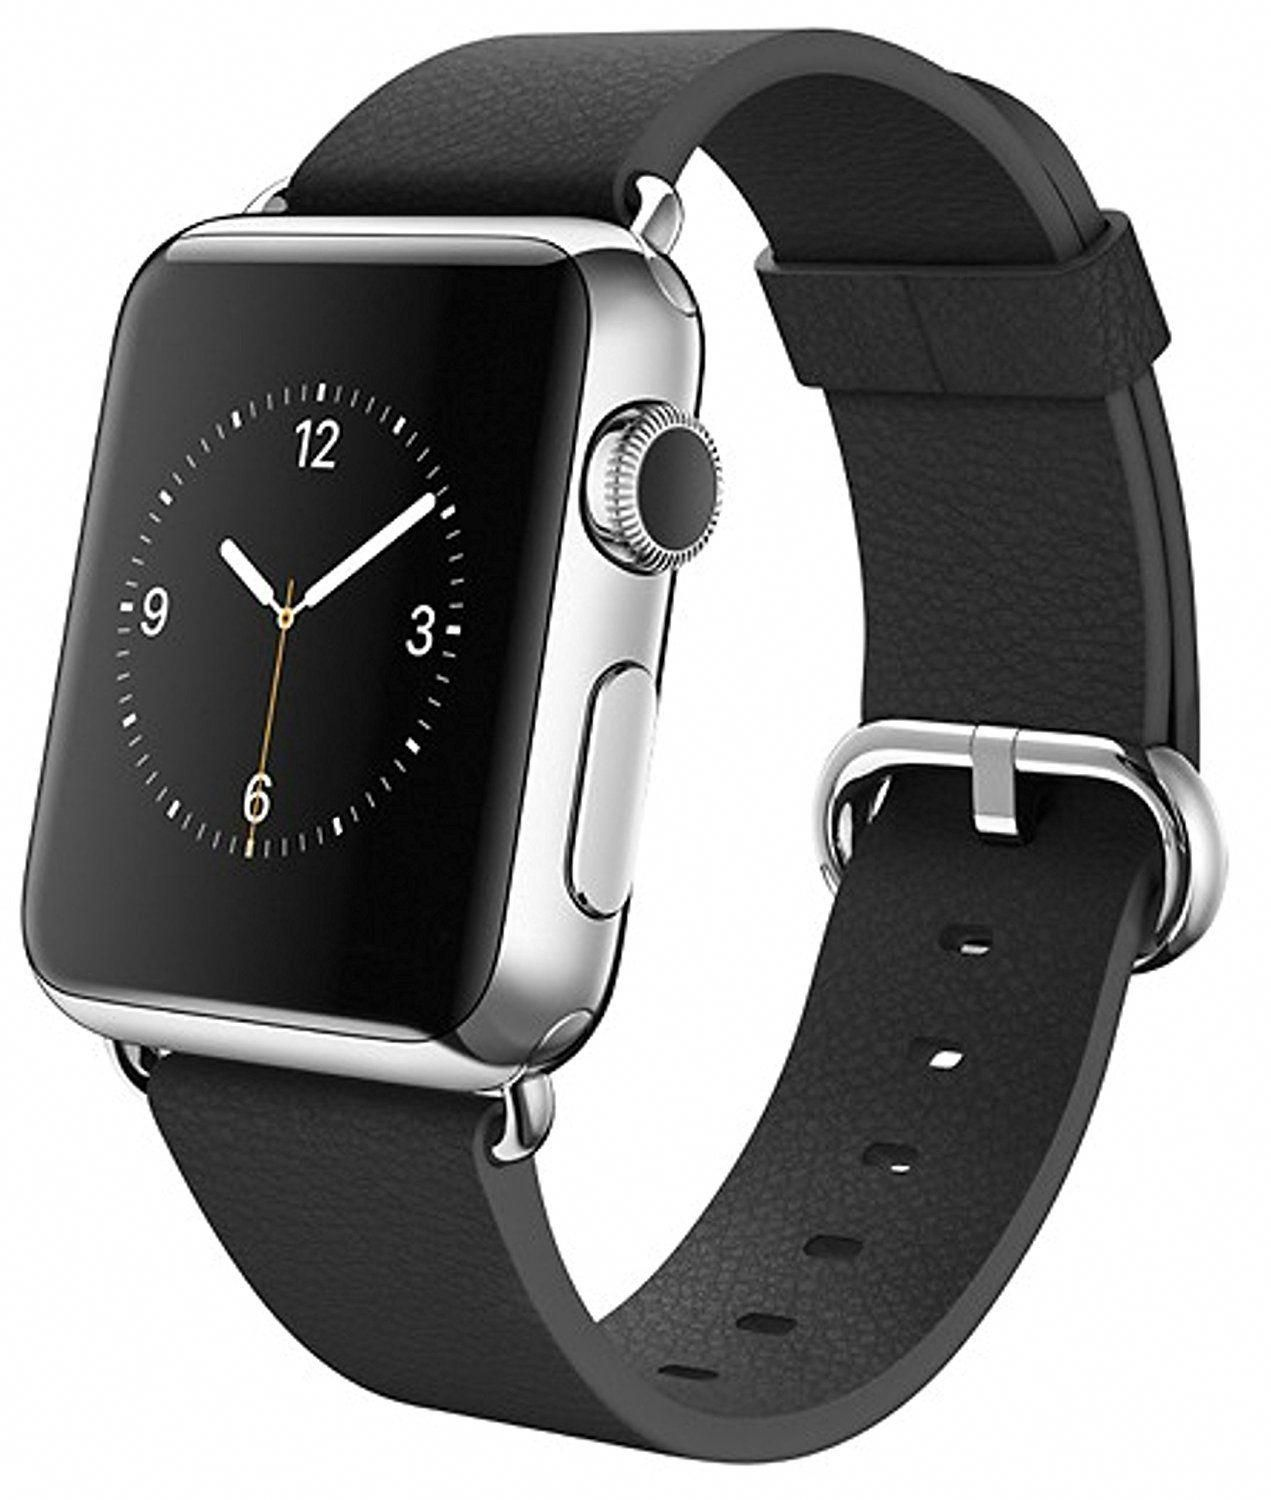 How to Find Your Lost Apple Watch Apple watch, Apple